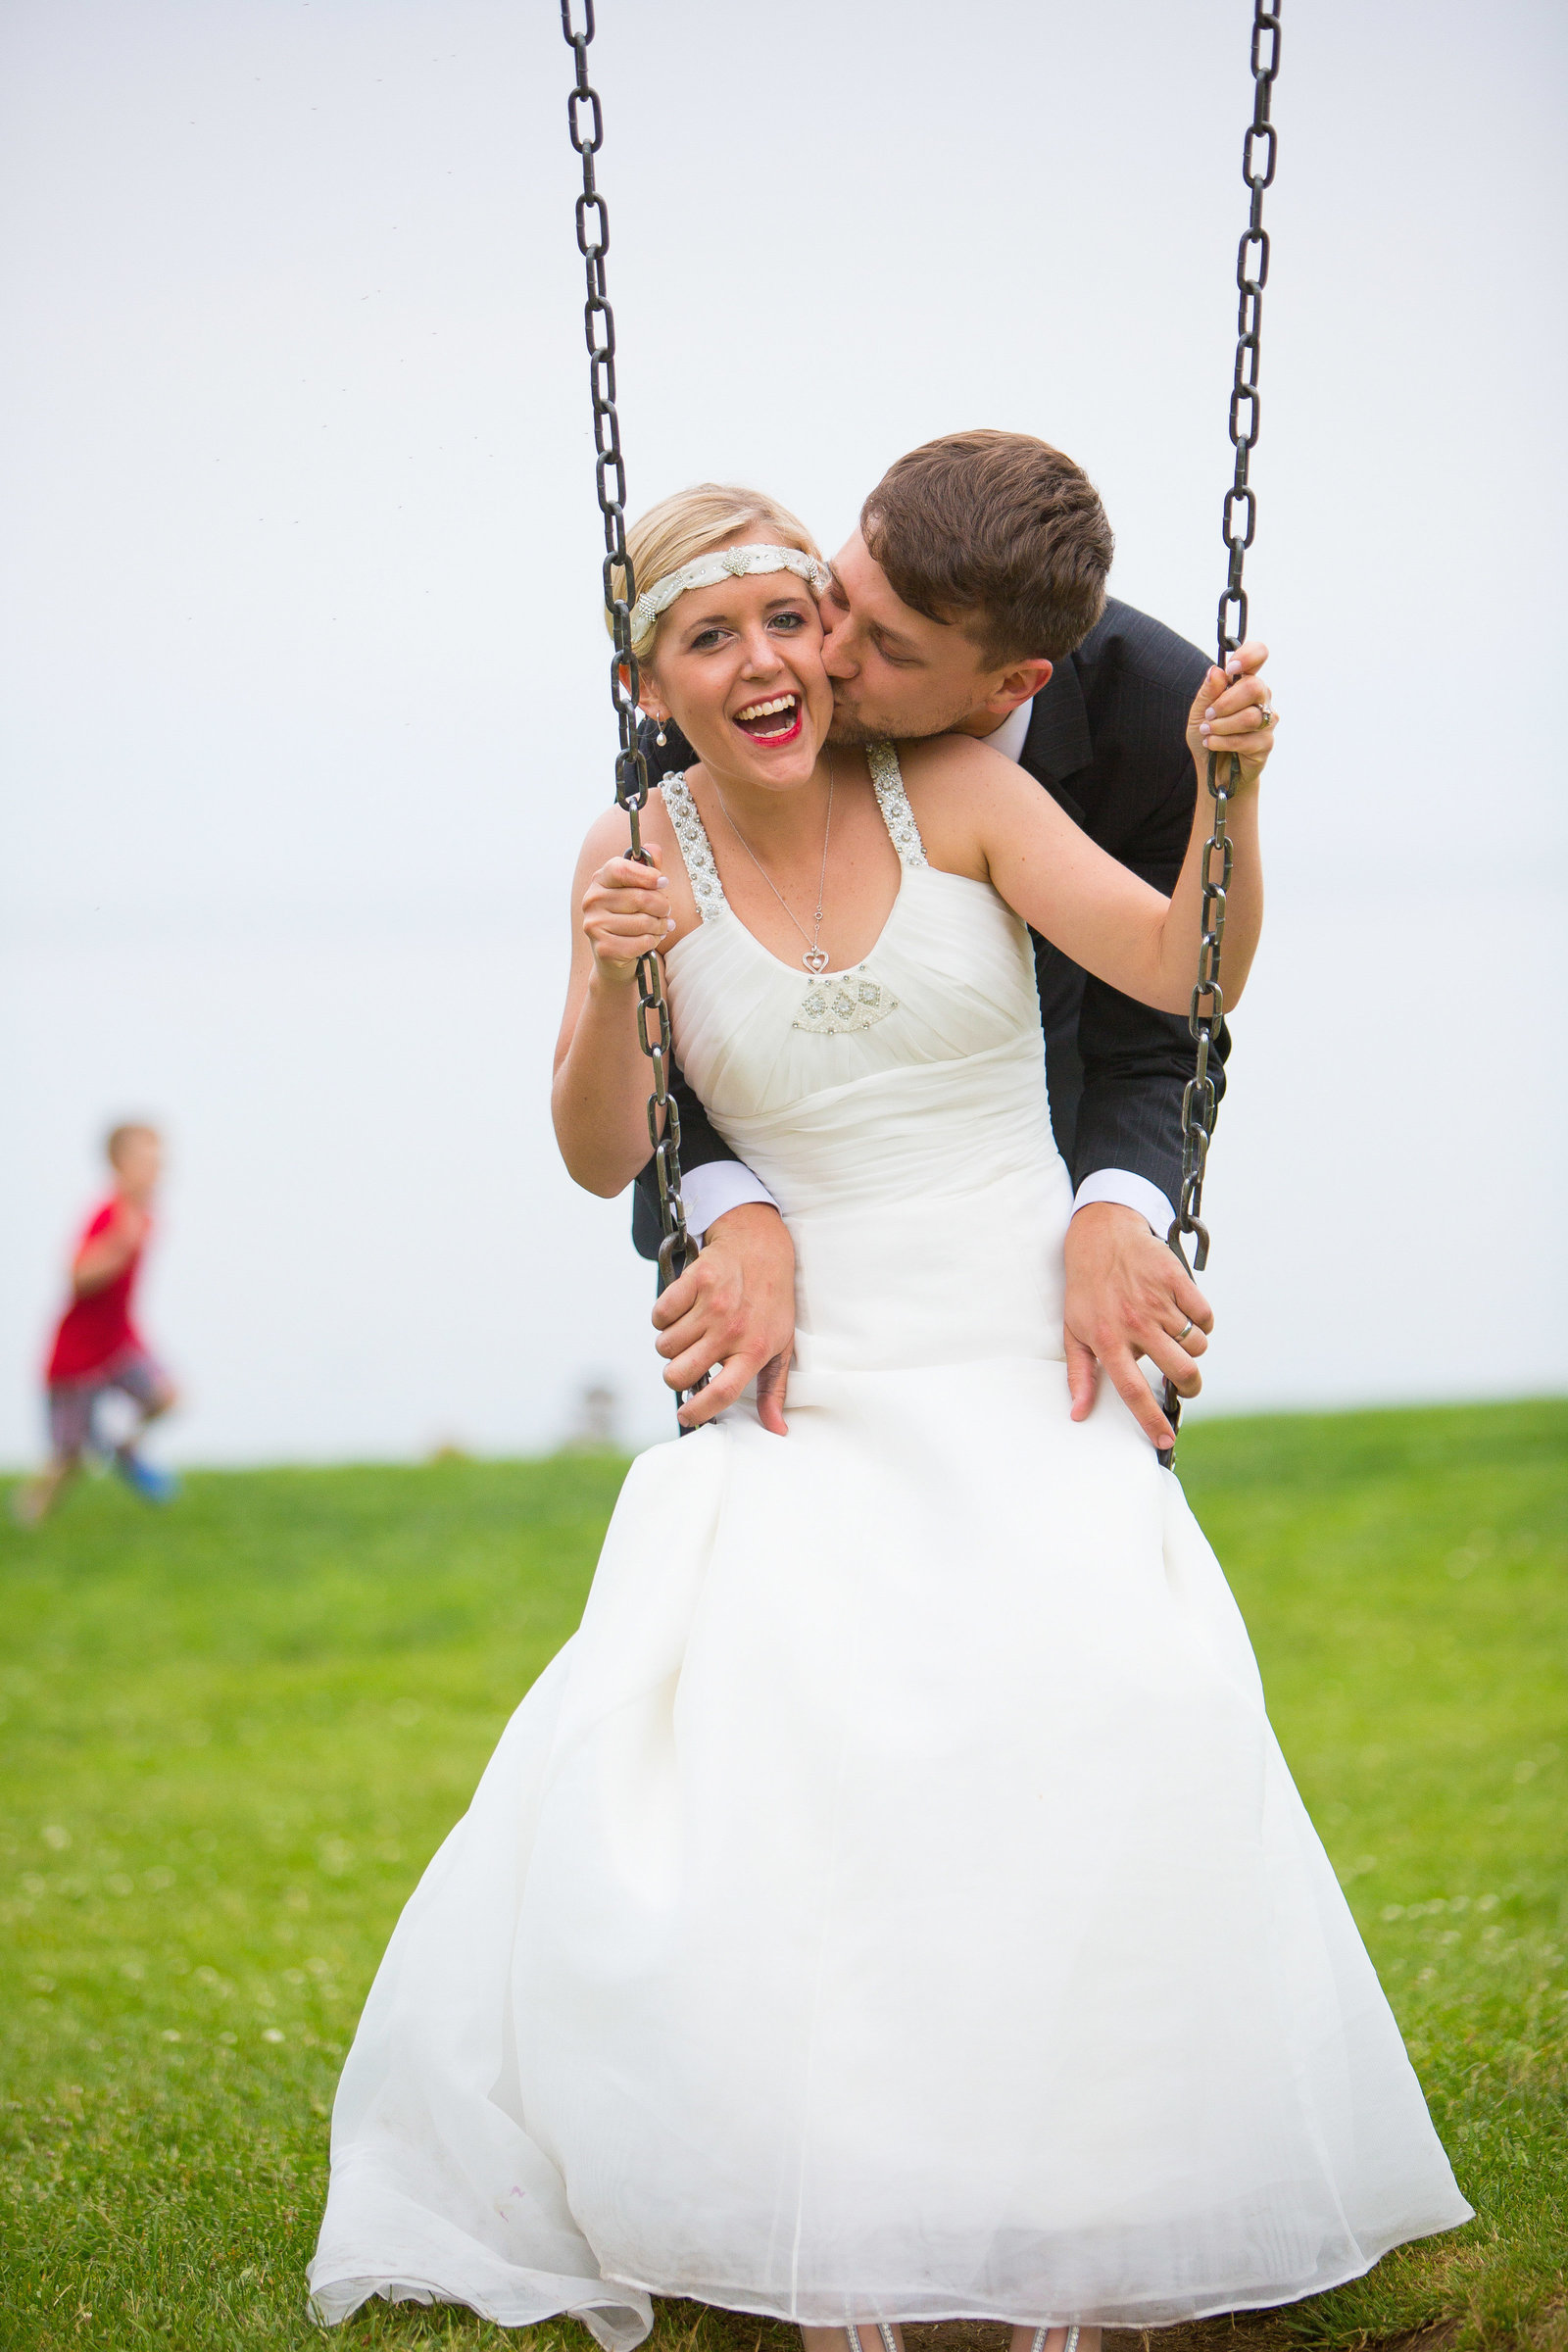 wedding photography bride and groom on swing